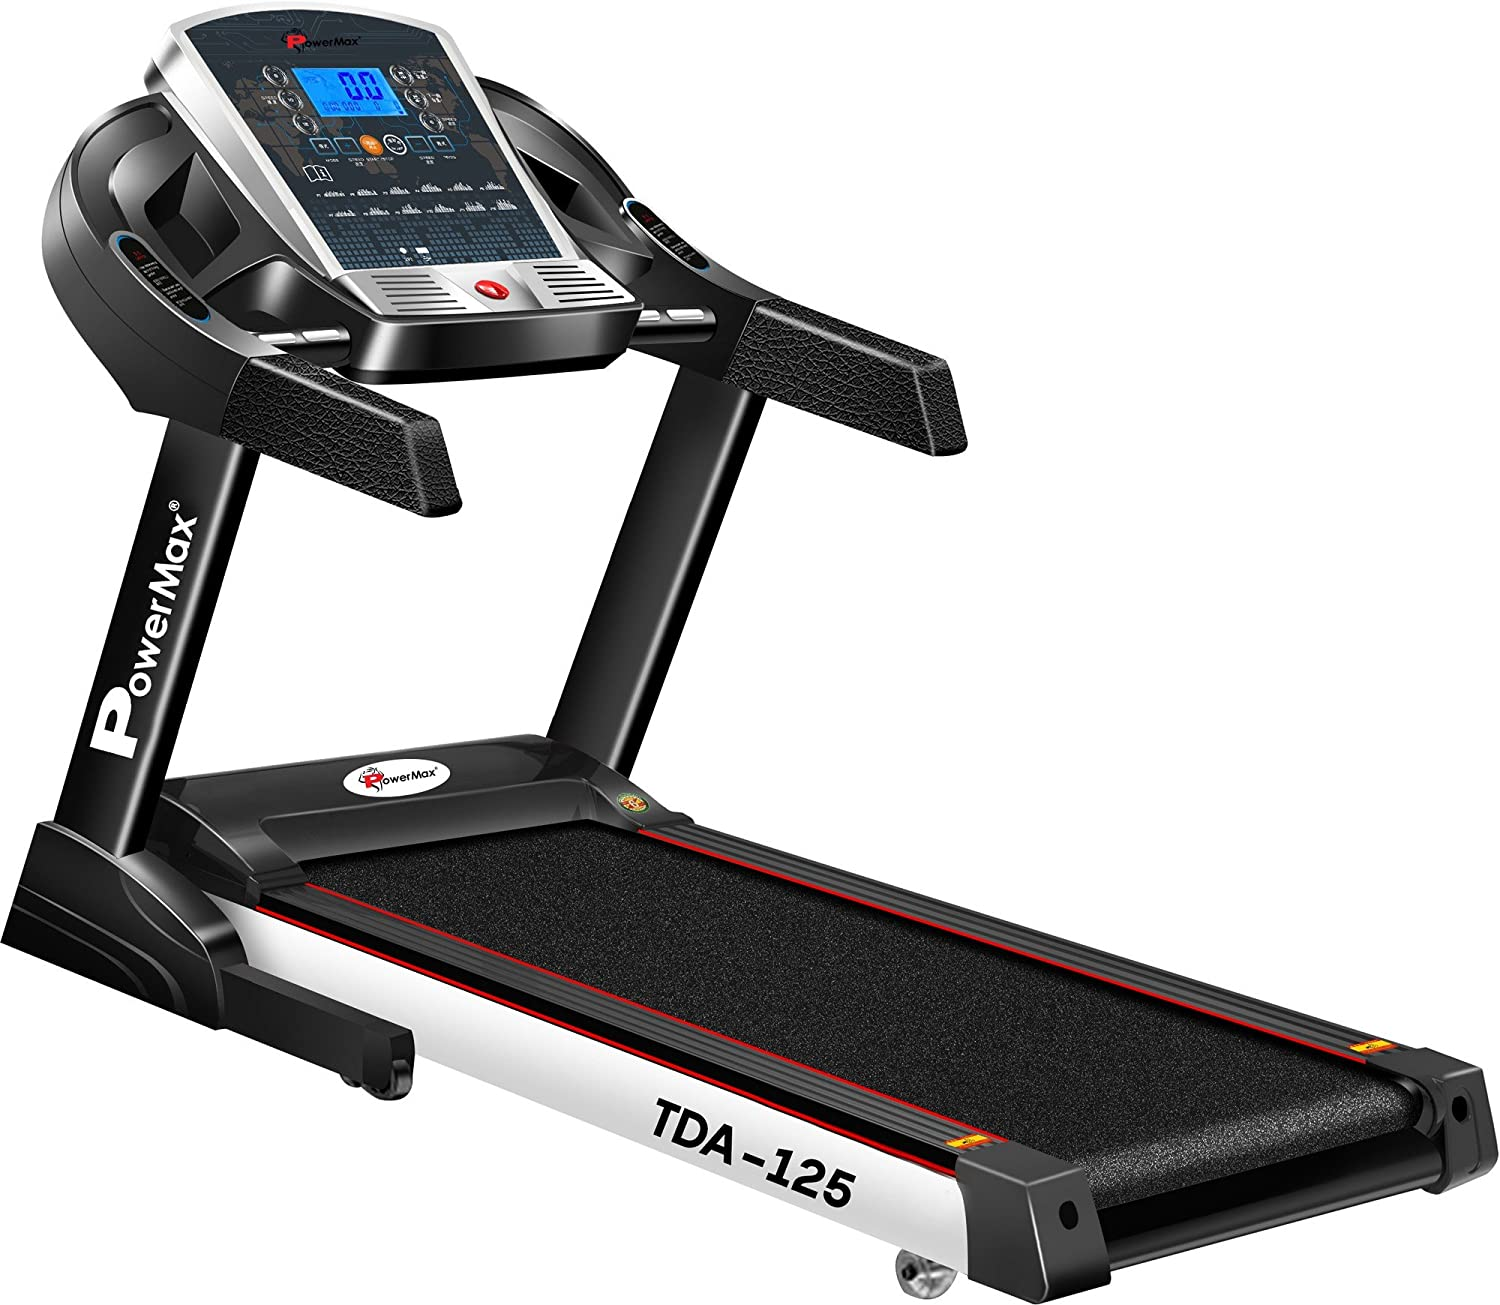 Powermax Fitness TDA-125 2.0 HP (4 HP peak) Motorized, Smart Treadmill with Auto Inclination and Auto Lubrication